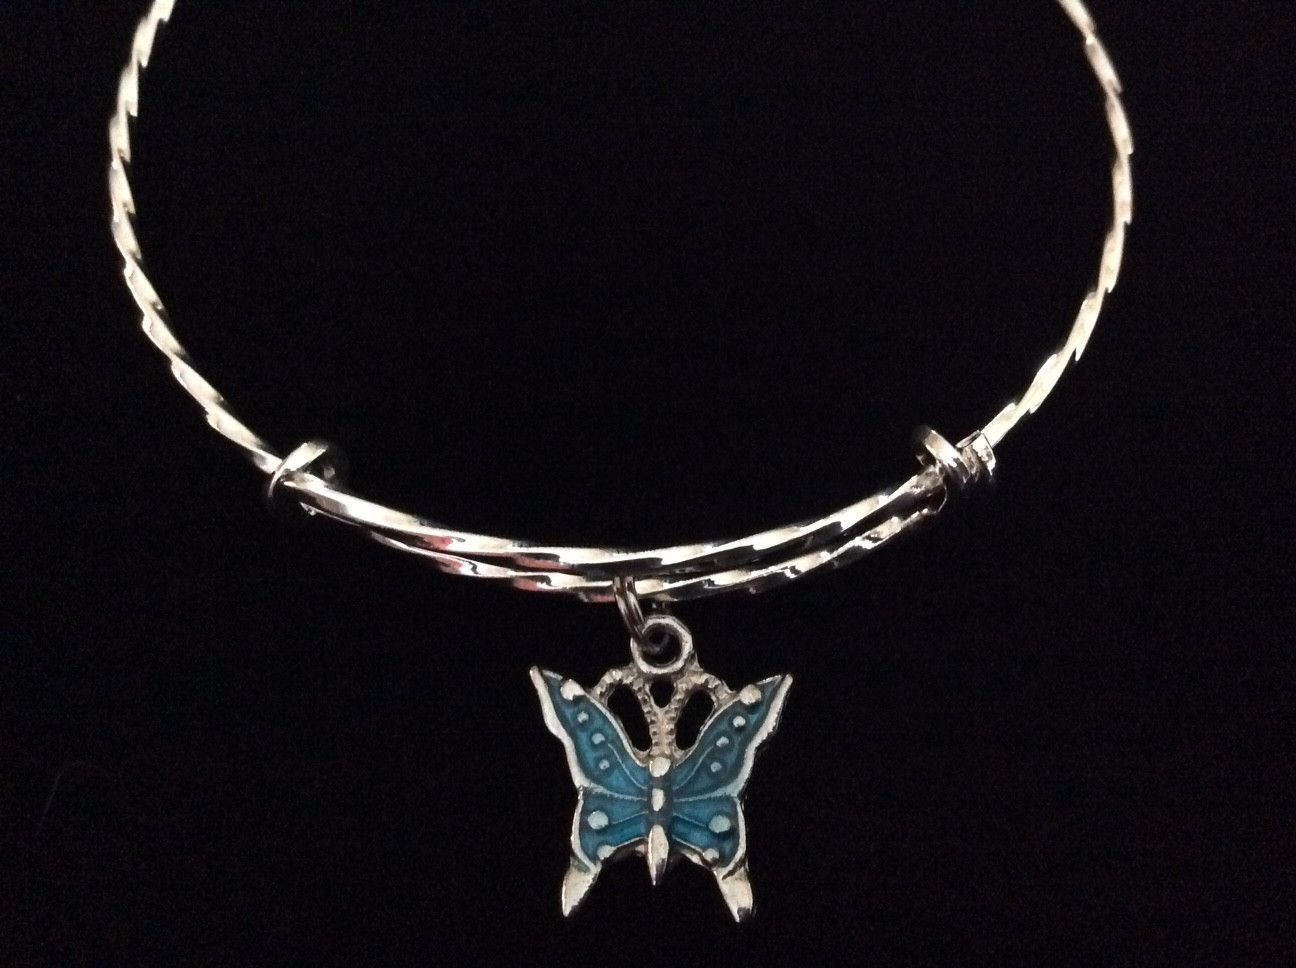 Blue Butterfly Twisted Silver Expandable Charm Bracelet Adjustable Wire Bangle Basket Gift